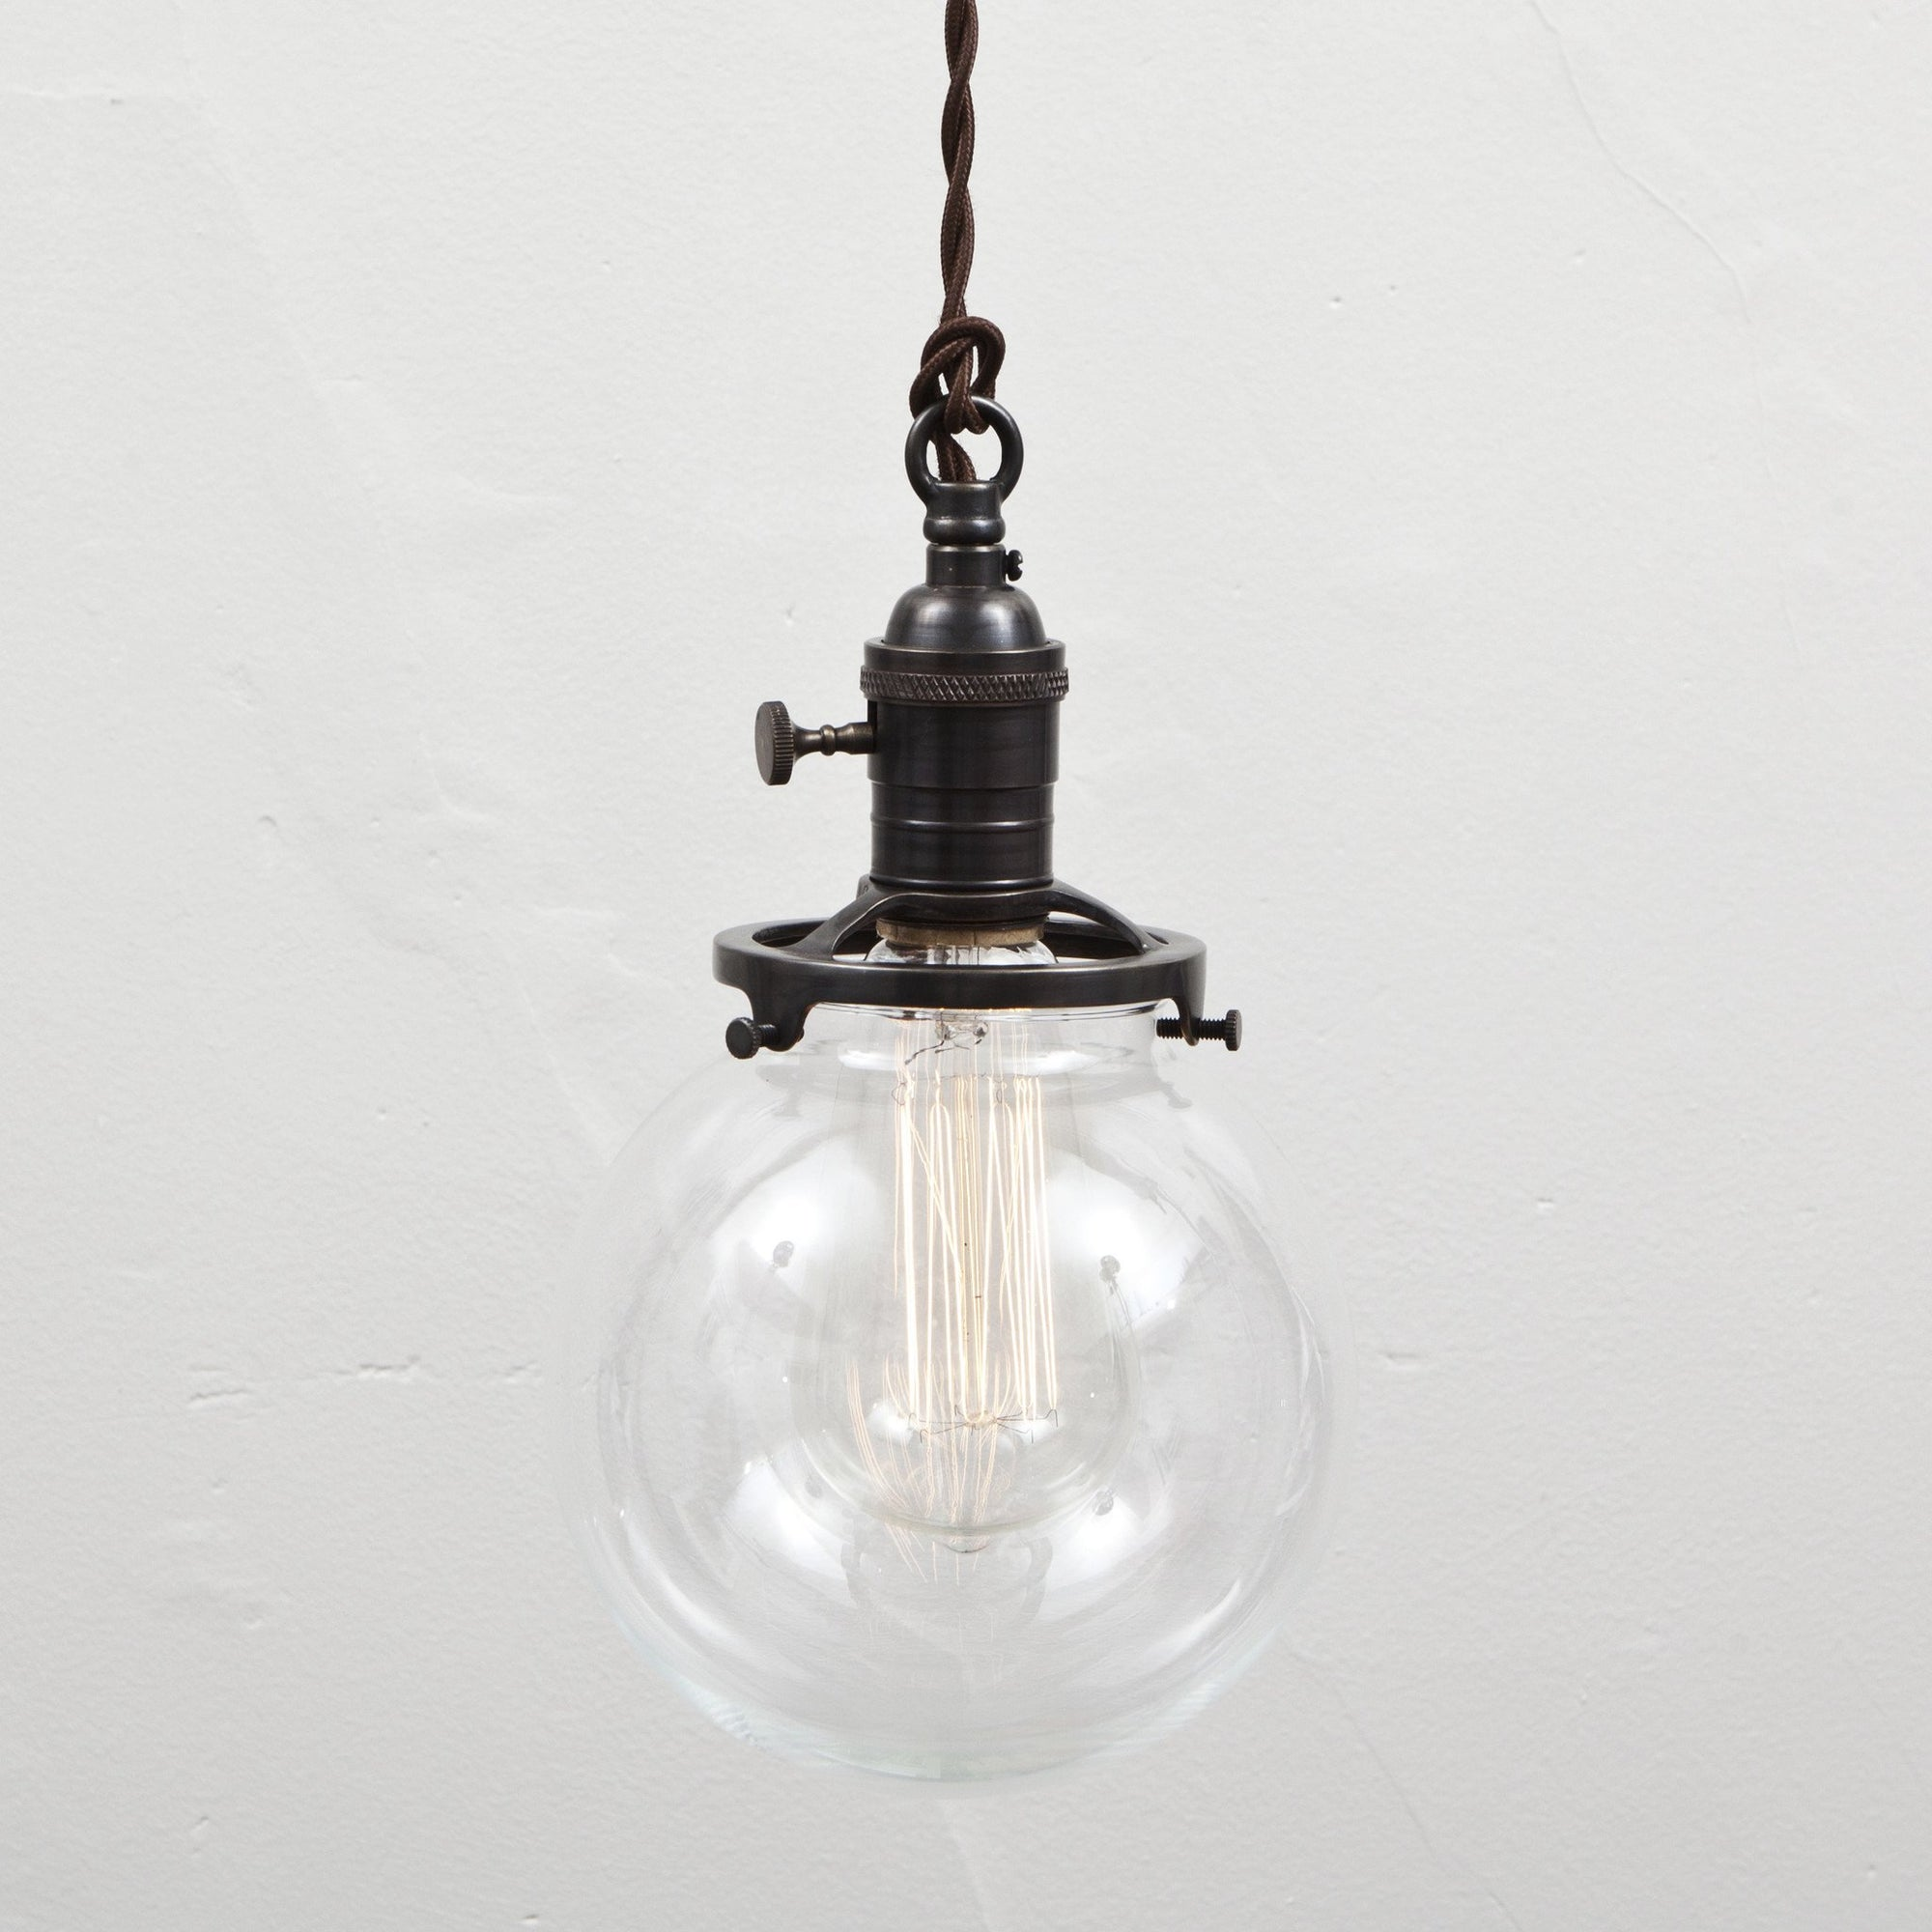 Clear Glass Globe Pendant Light - Brass Switch Socket